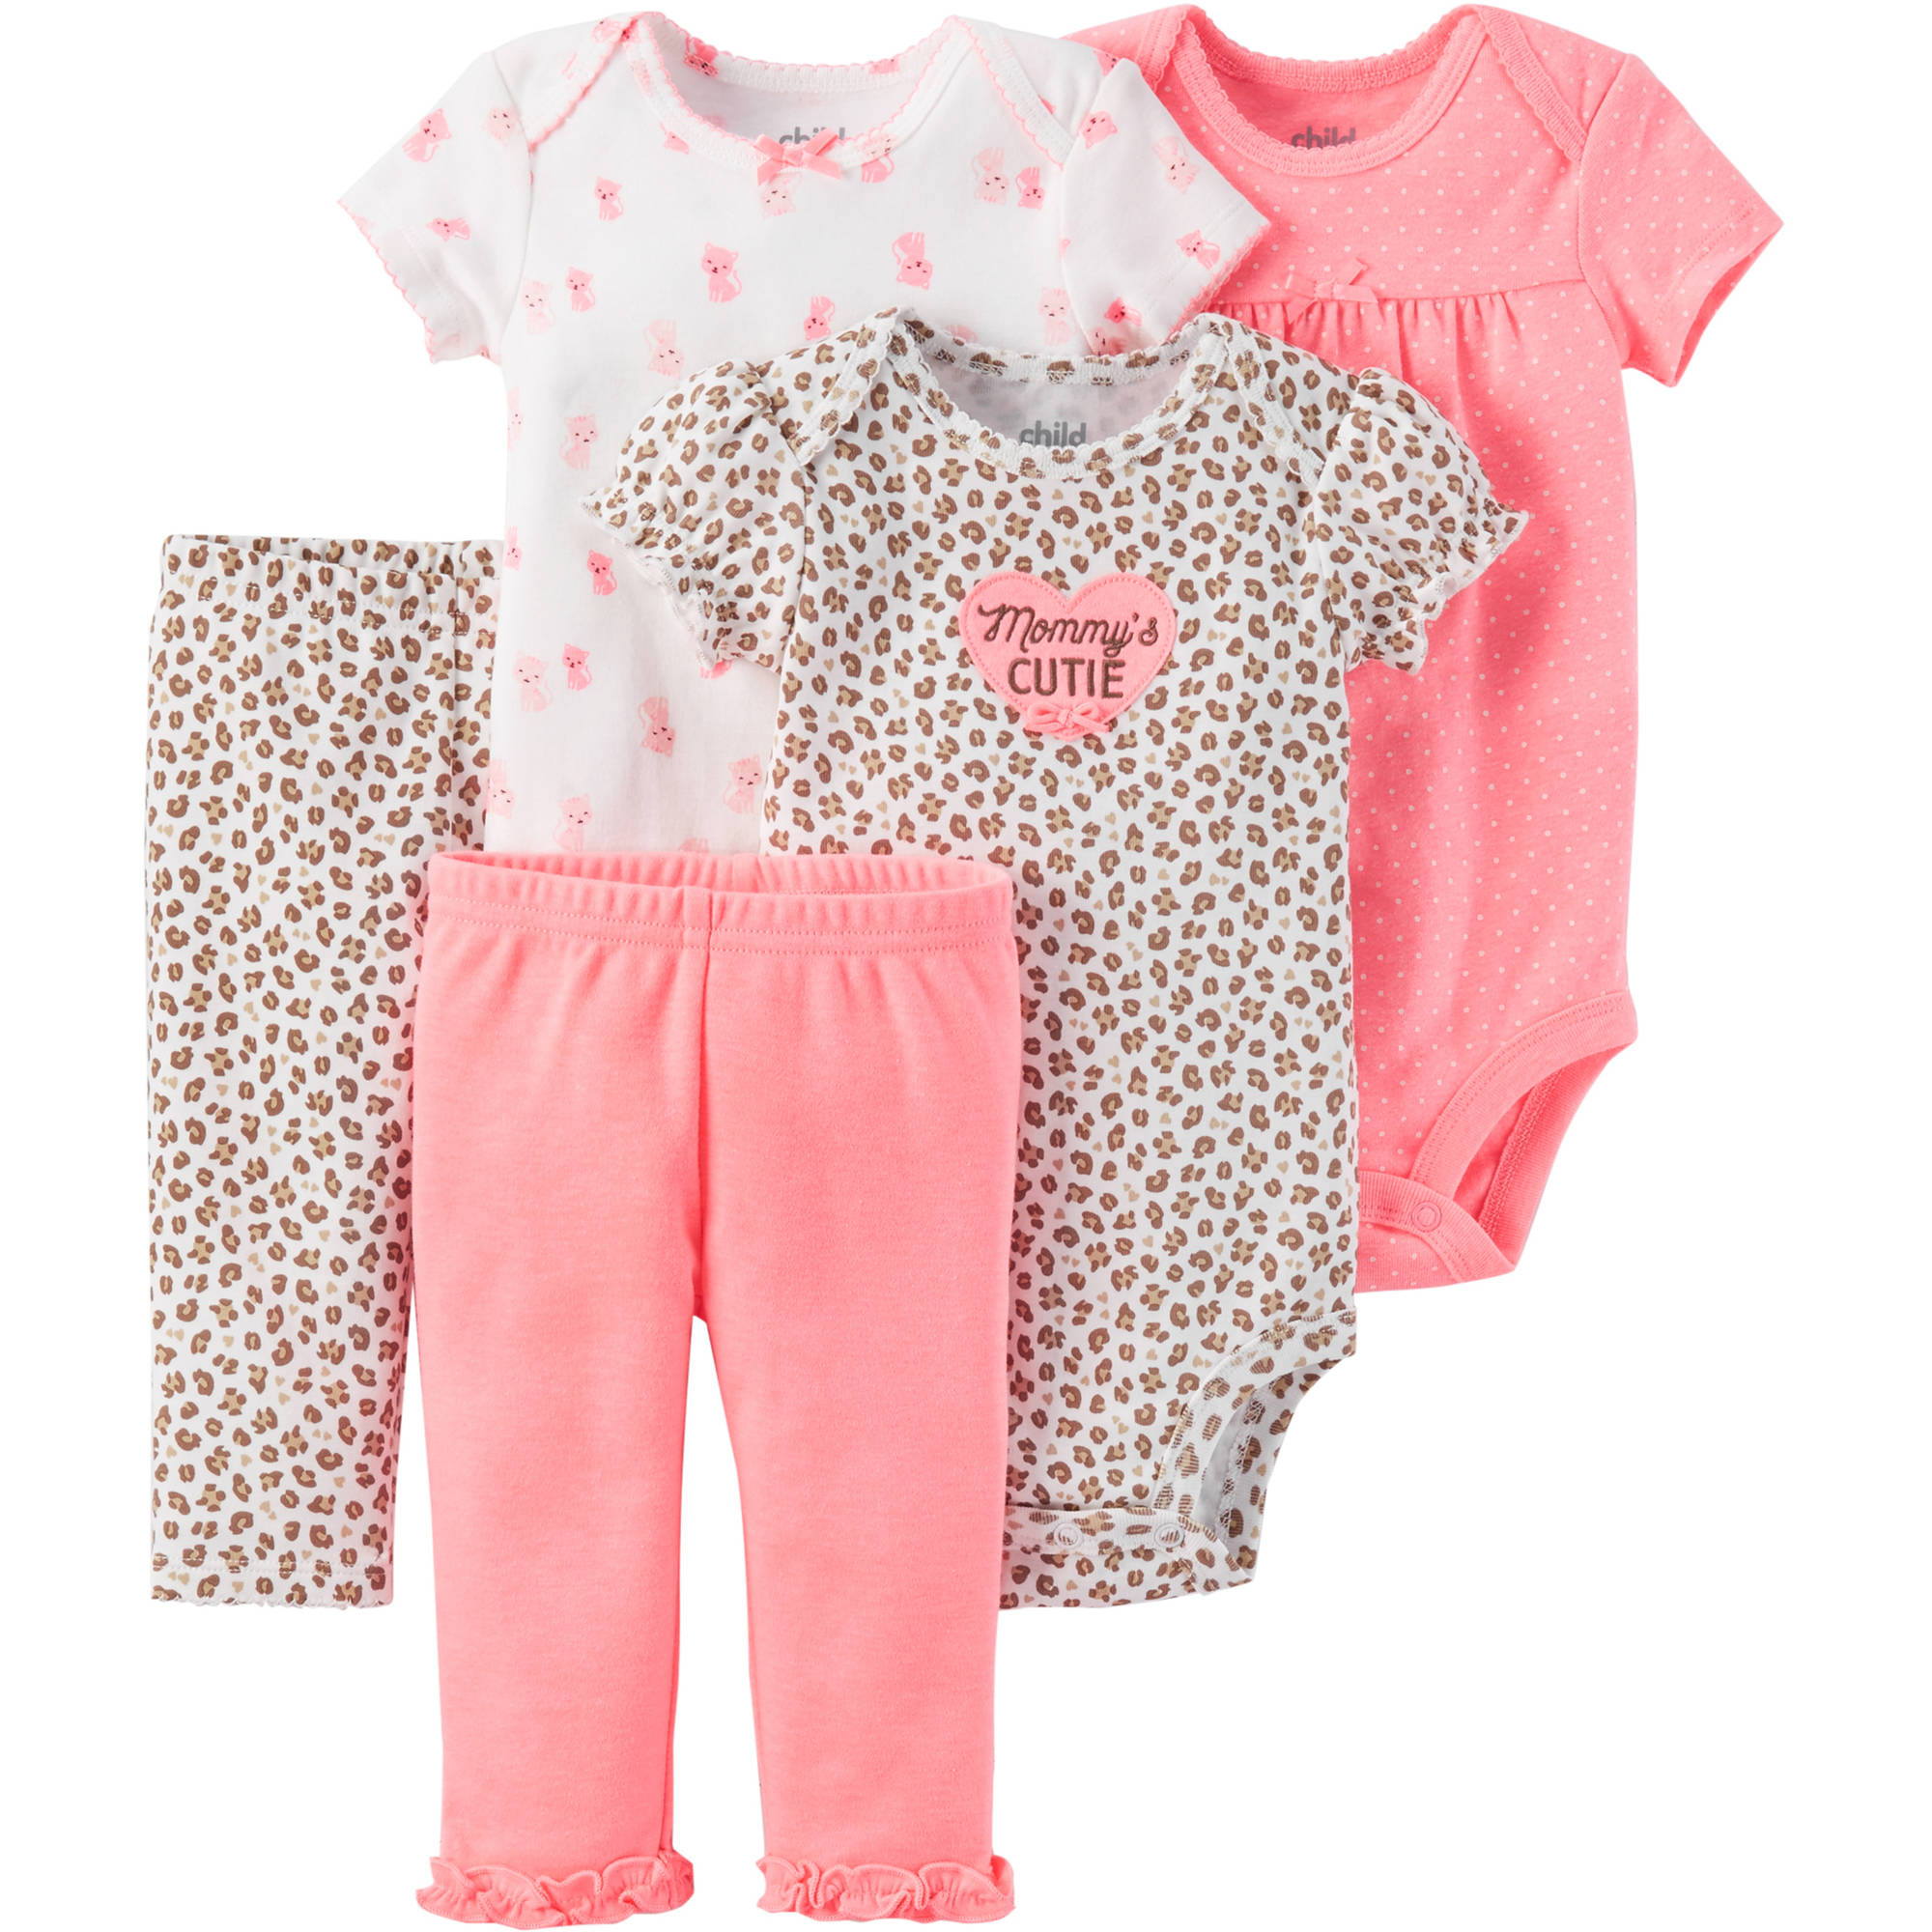 Child of Mine by Carter's Newborn Baby Girl Bodysuit and Pantset Outfit Set, 5 Piece